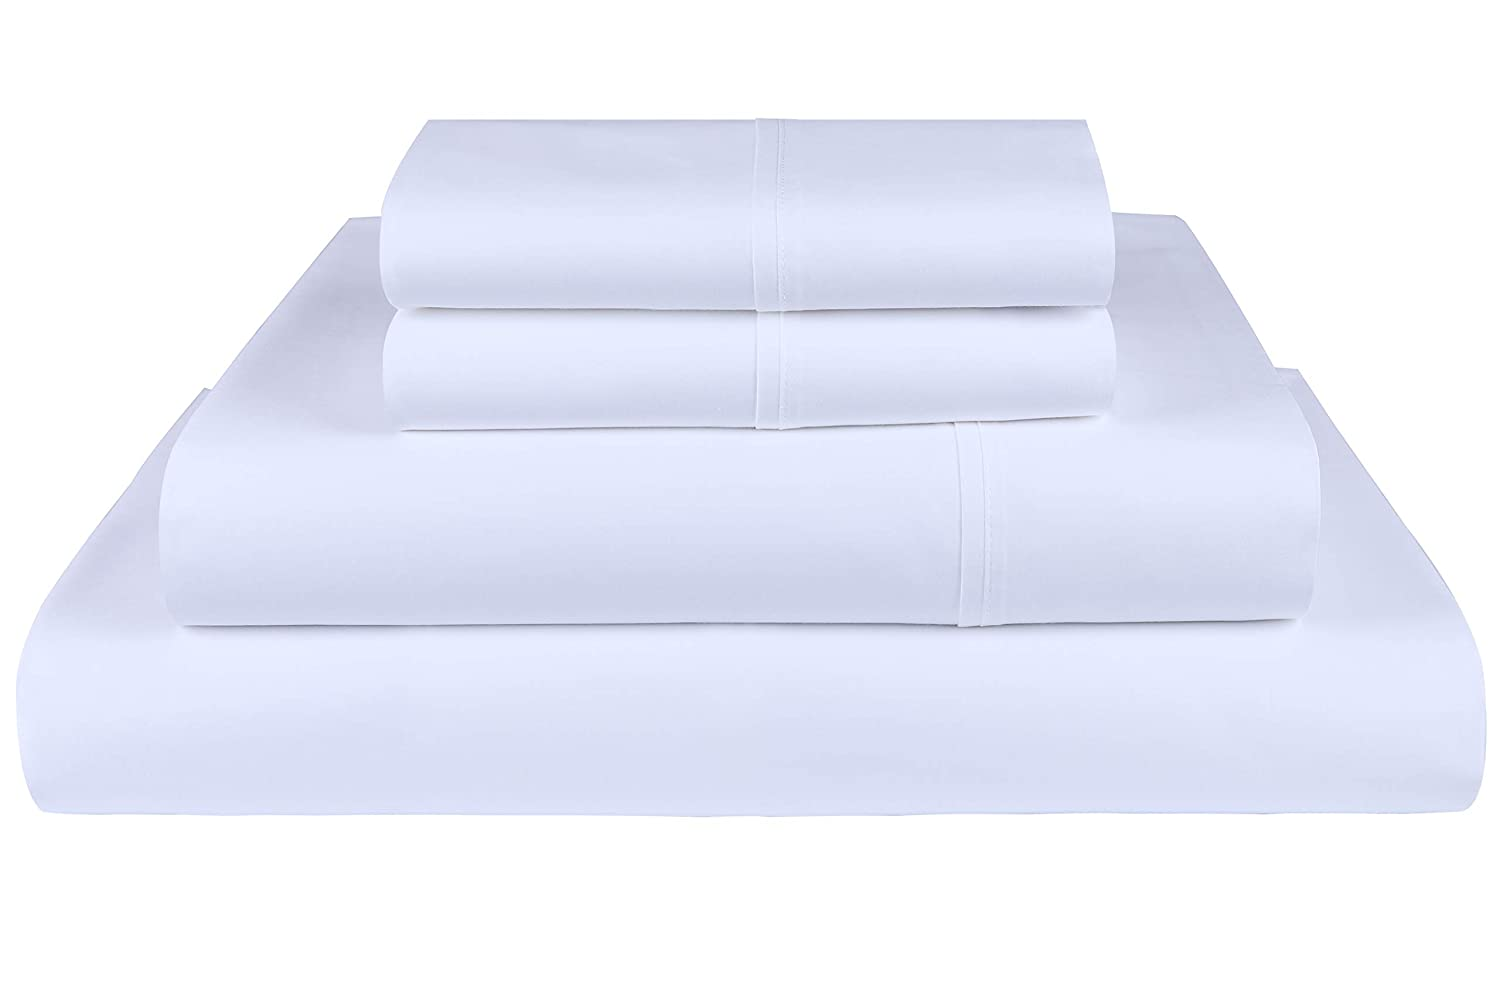 Threadmill Home Linen 800 Thread Count 100% ELS Cotton Sheet Set,Twin Sheets, Luxury Bedding, Twin Sheets 3 Piece Set, Smooth Sateen Weave, White bed sheets Bed Sheets Review: Best bed sheets on the market today 61fwANz6J7L